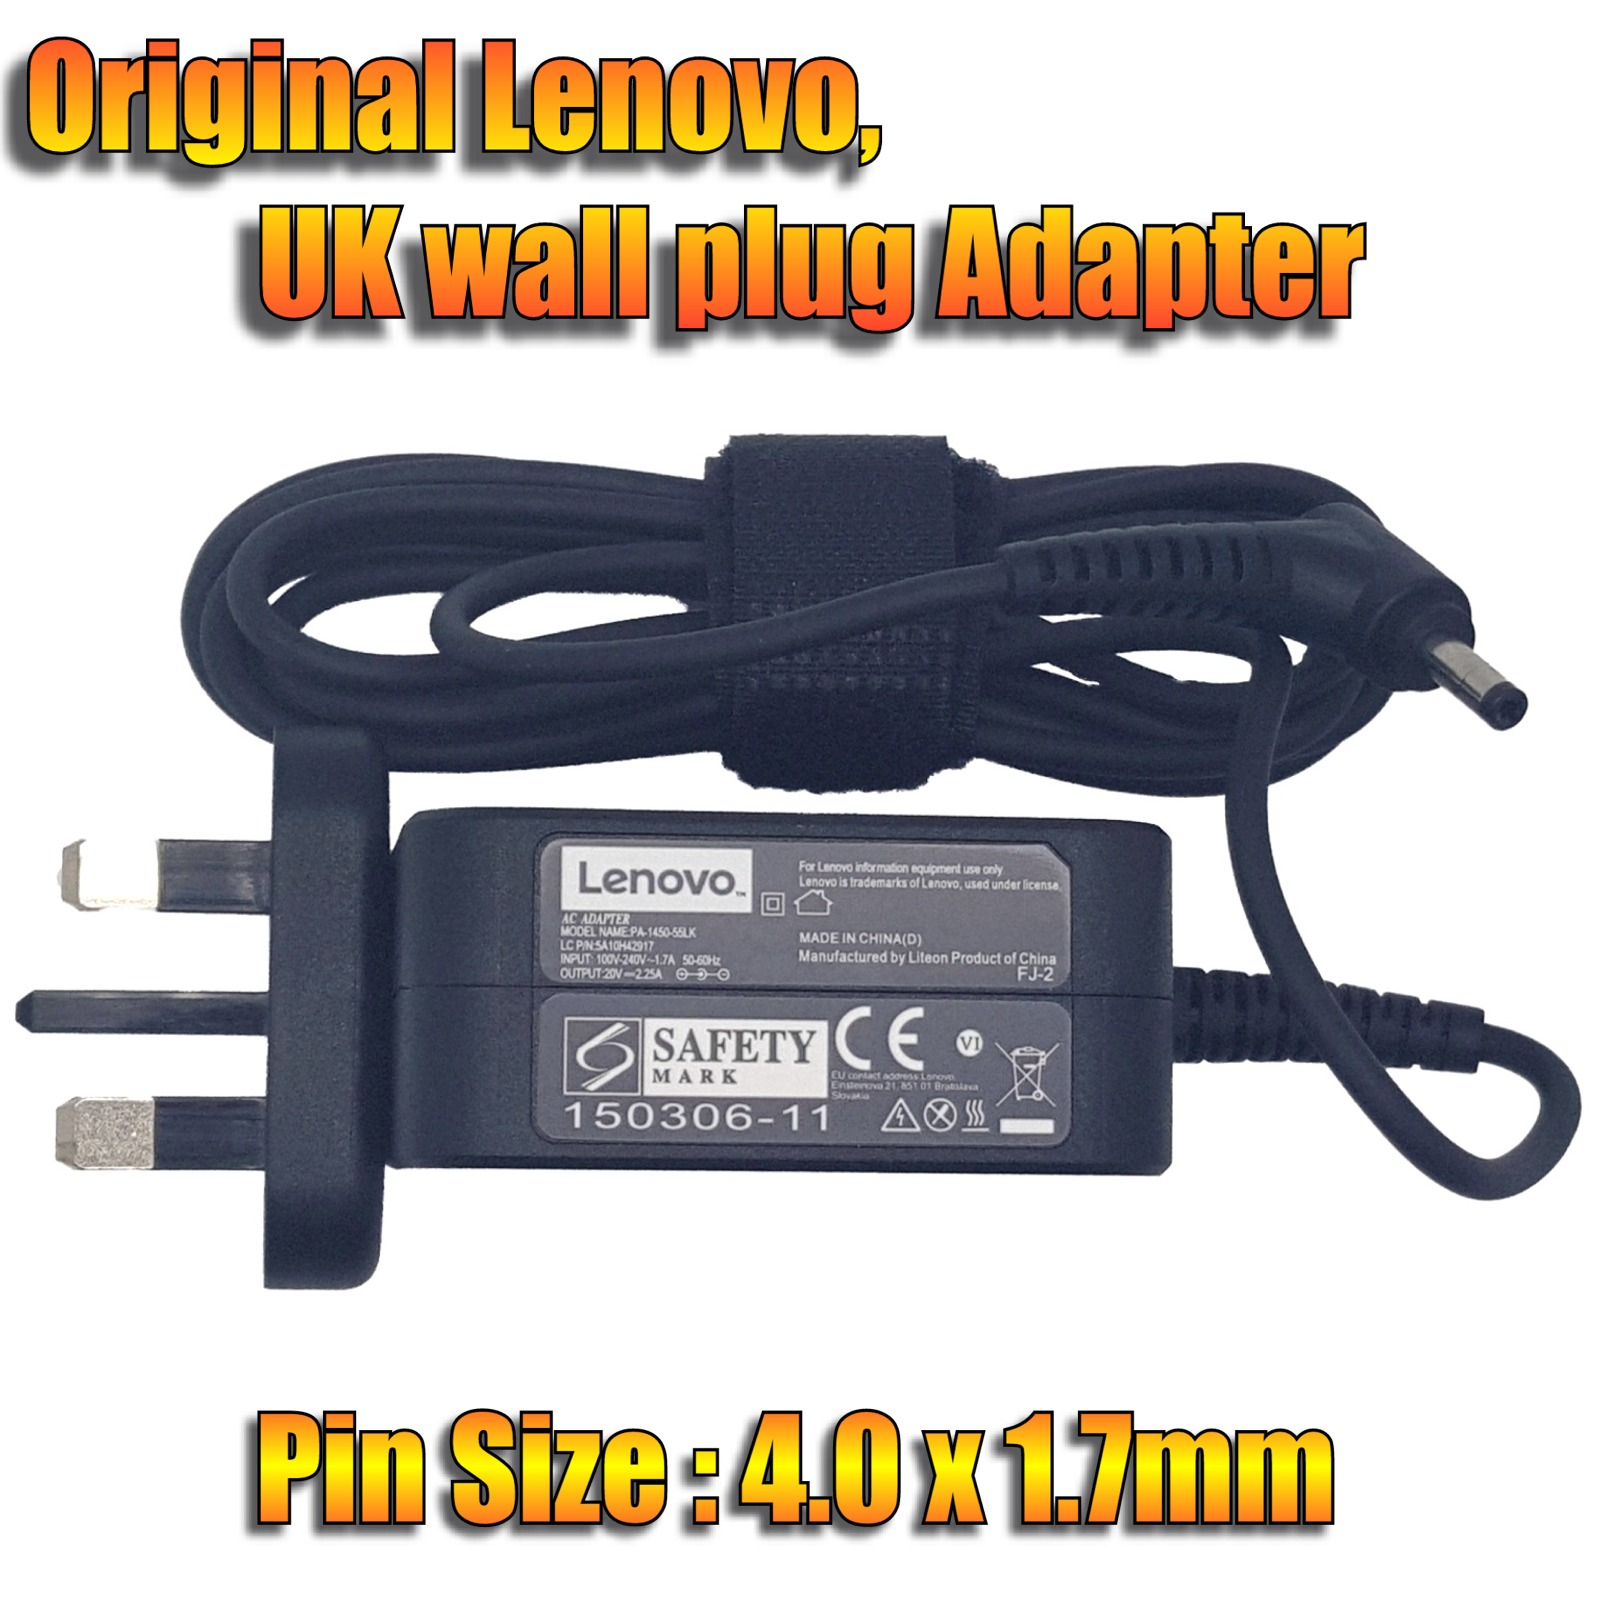 5 pin dc jack tablet netbook notebook 0 7mm 2005 hyundai elantra timing belt diagram new lenovo pa 1450 55lk 55lr 45w laptop